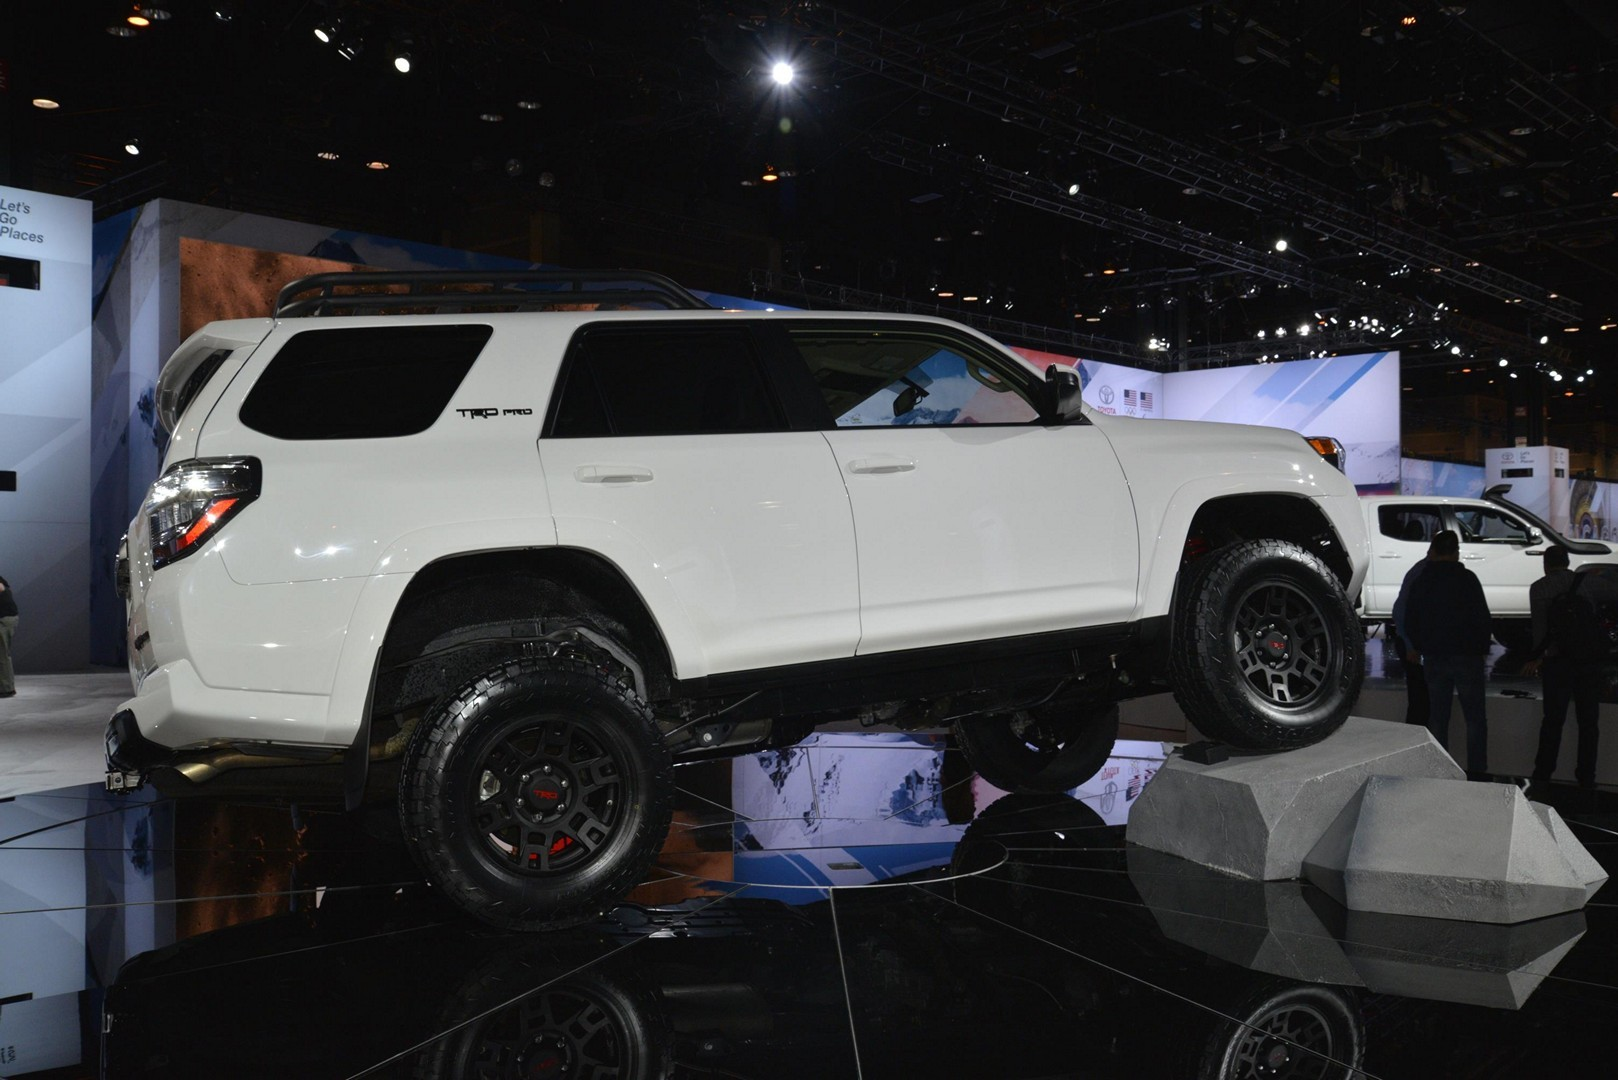 Toyota 2019 Trd Pro Tundra Tacoma And 4runner Flaunt Snorkel And Suspension Kit Autoevolution